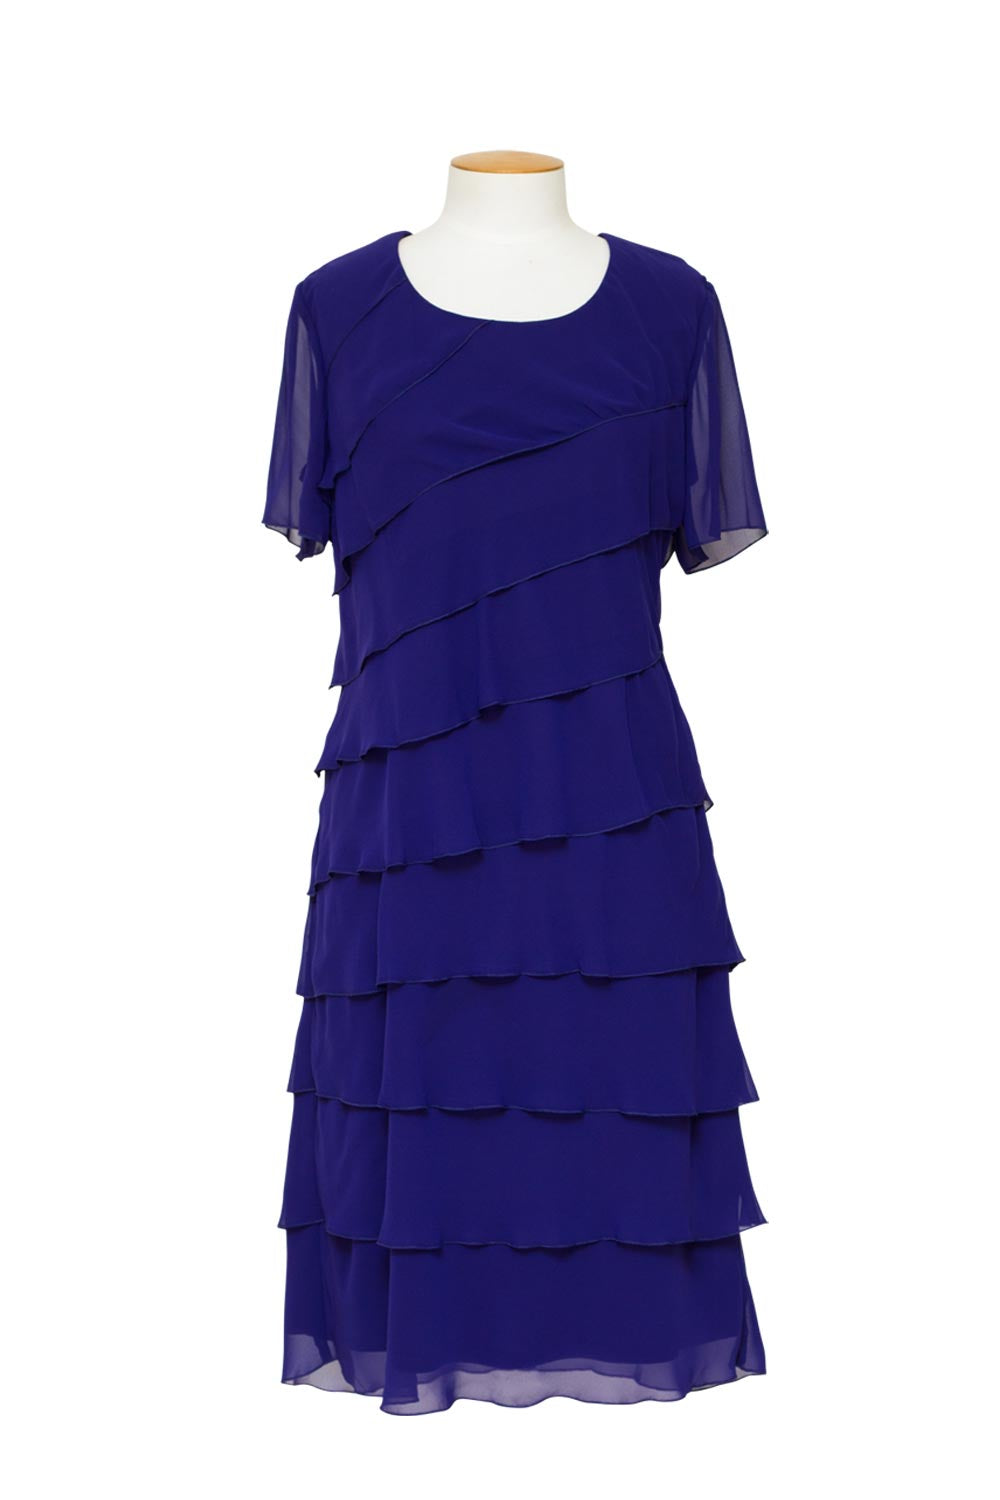 layla-jones-jesse-harper-short-sleeve-chiffon-layer-dress